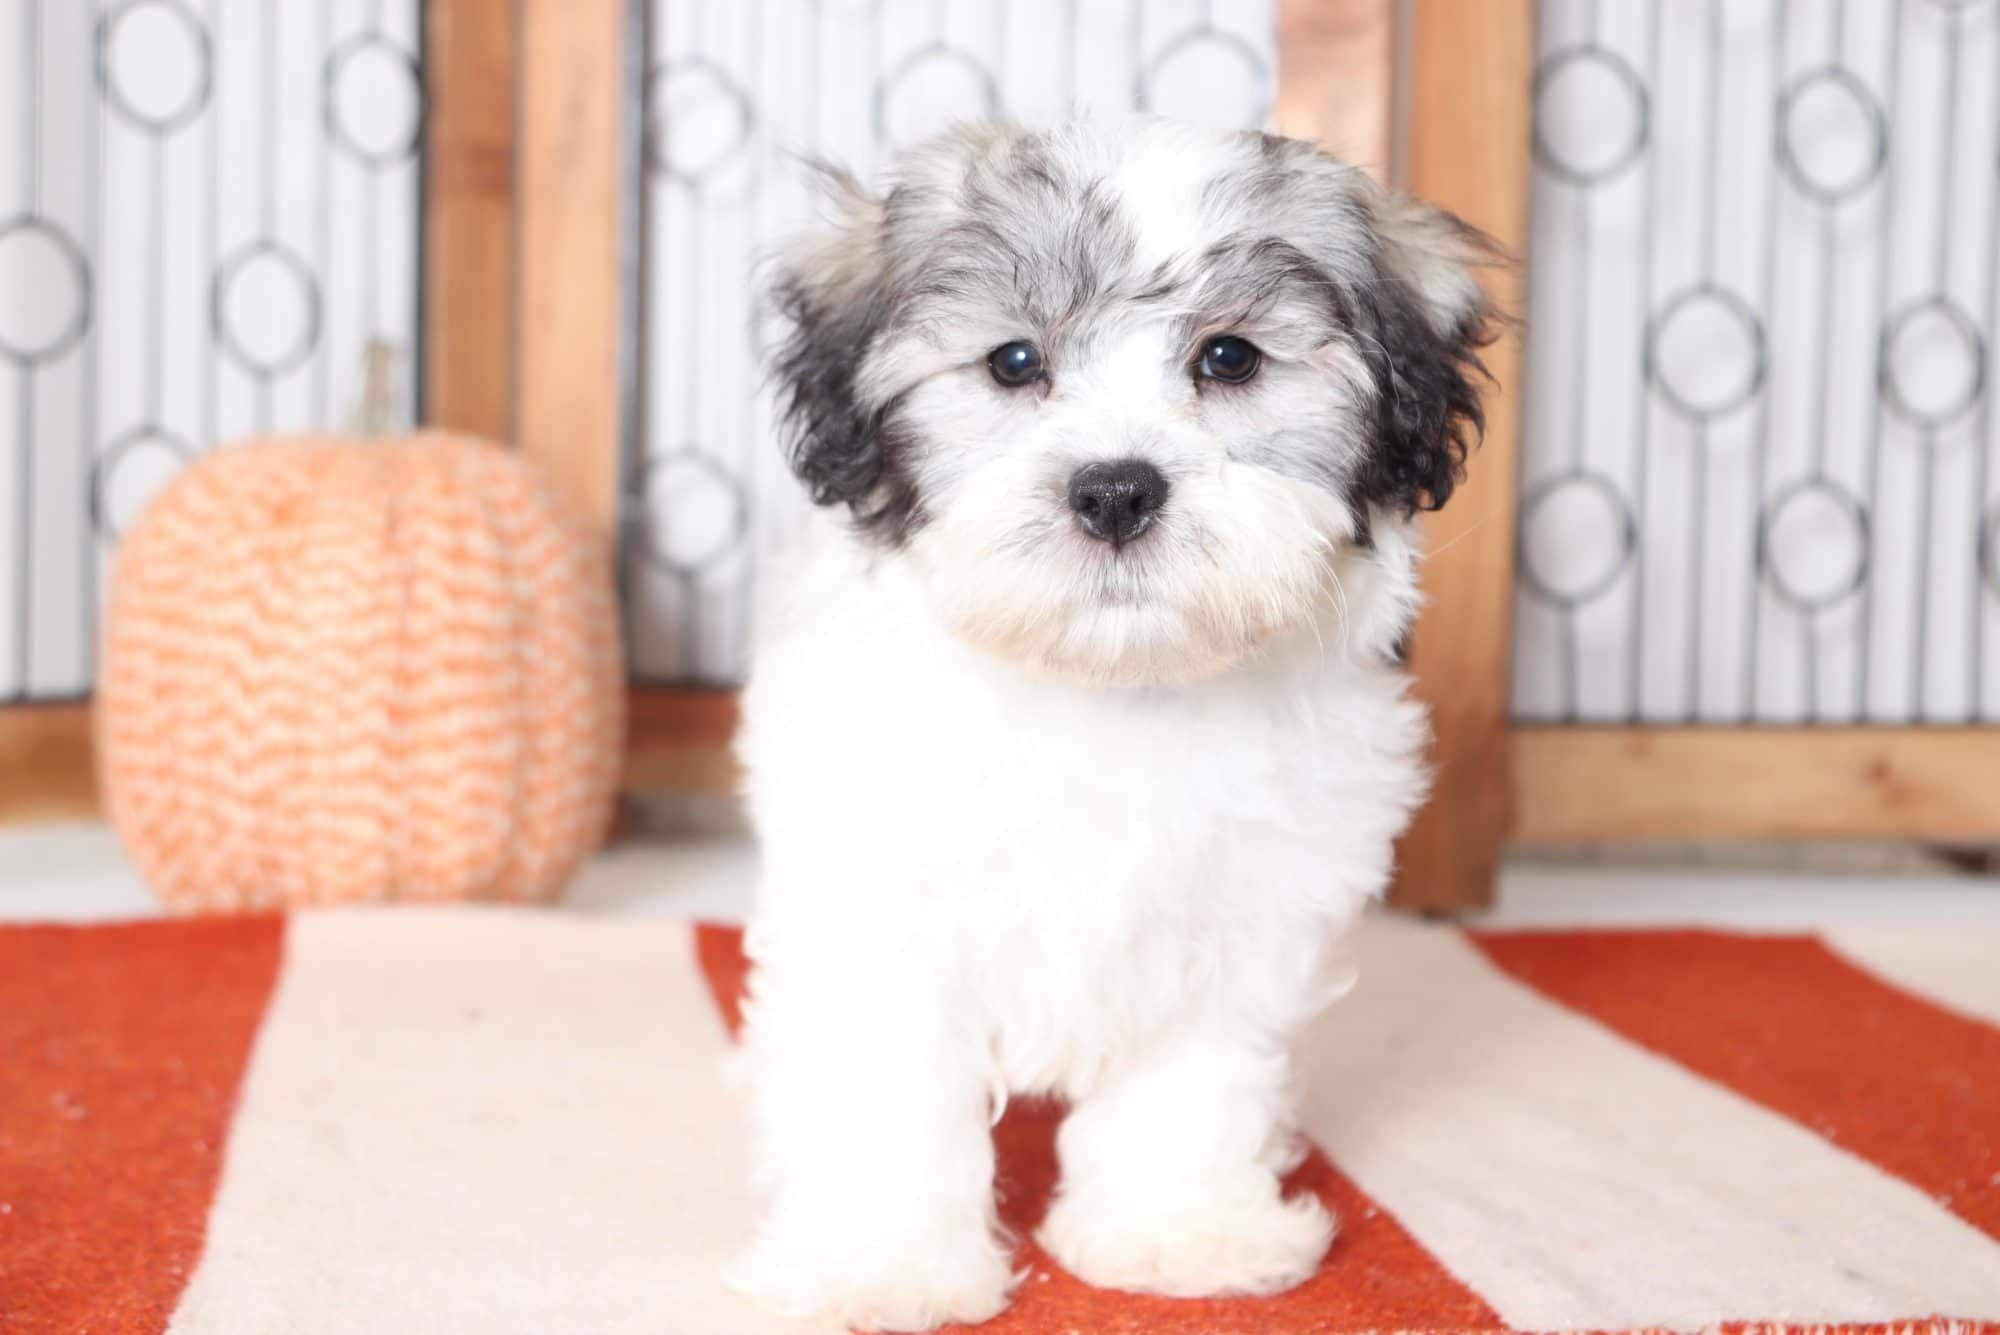 Patches Fun Little Male Teddy Bear Puppy (With images